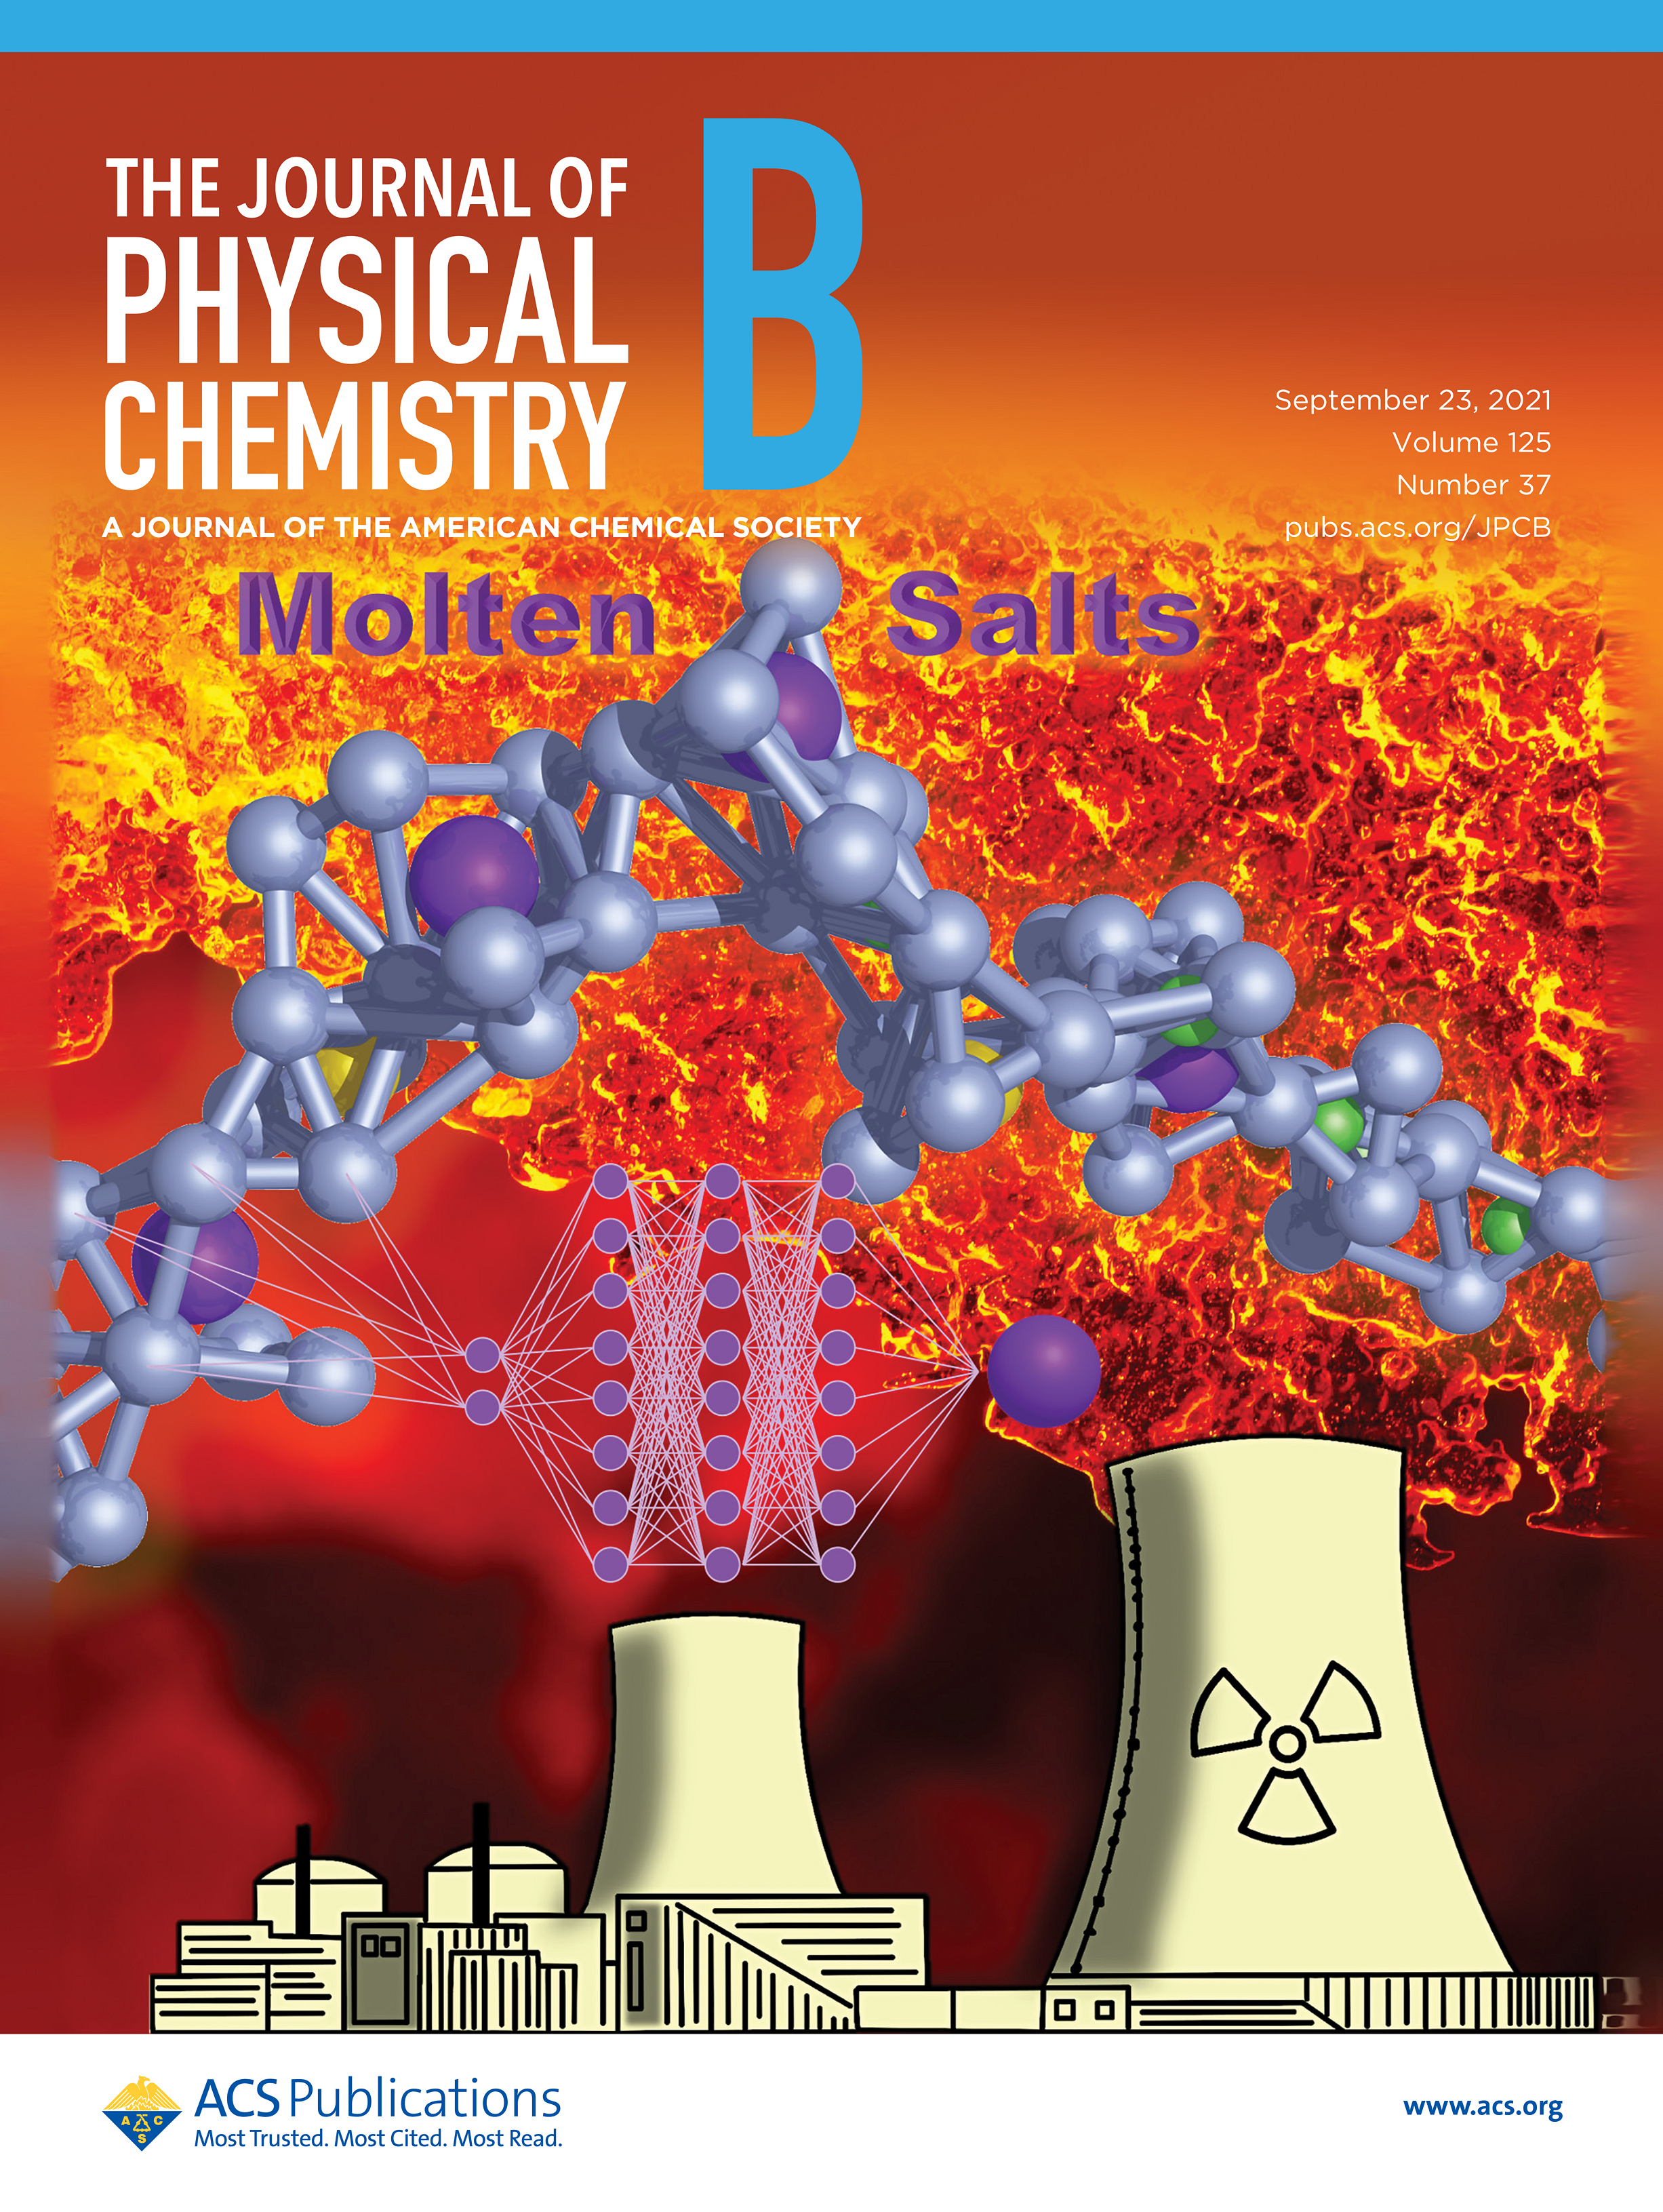 Journal of Physical Chemistry B cover art depicting work from Yang Zhang's lab group